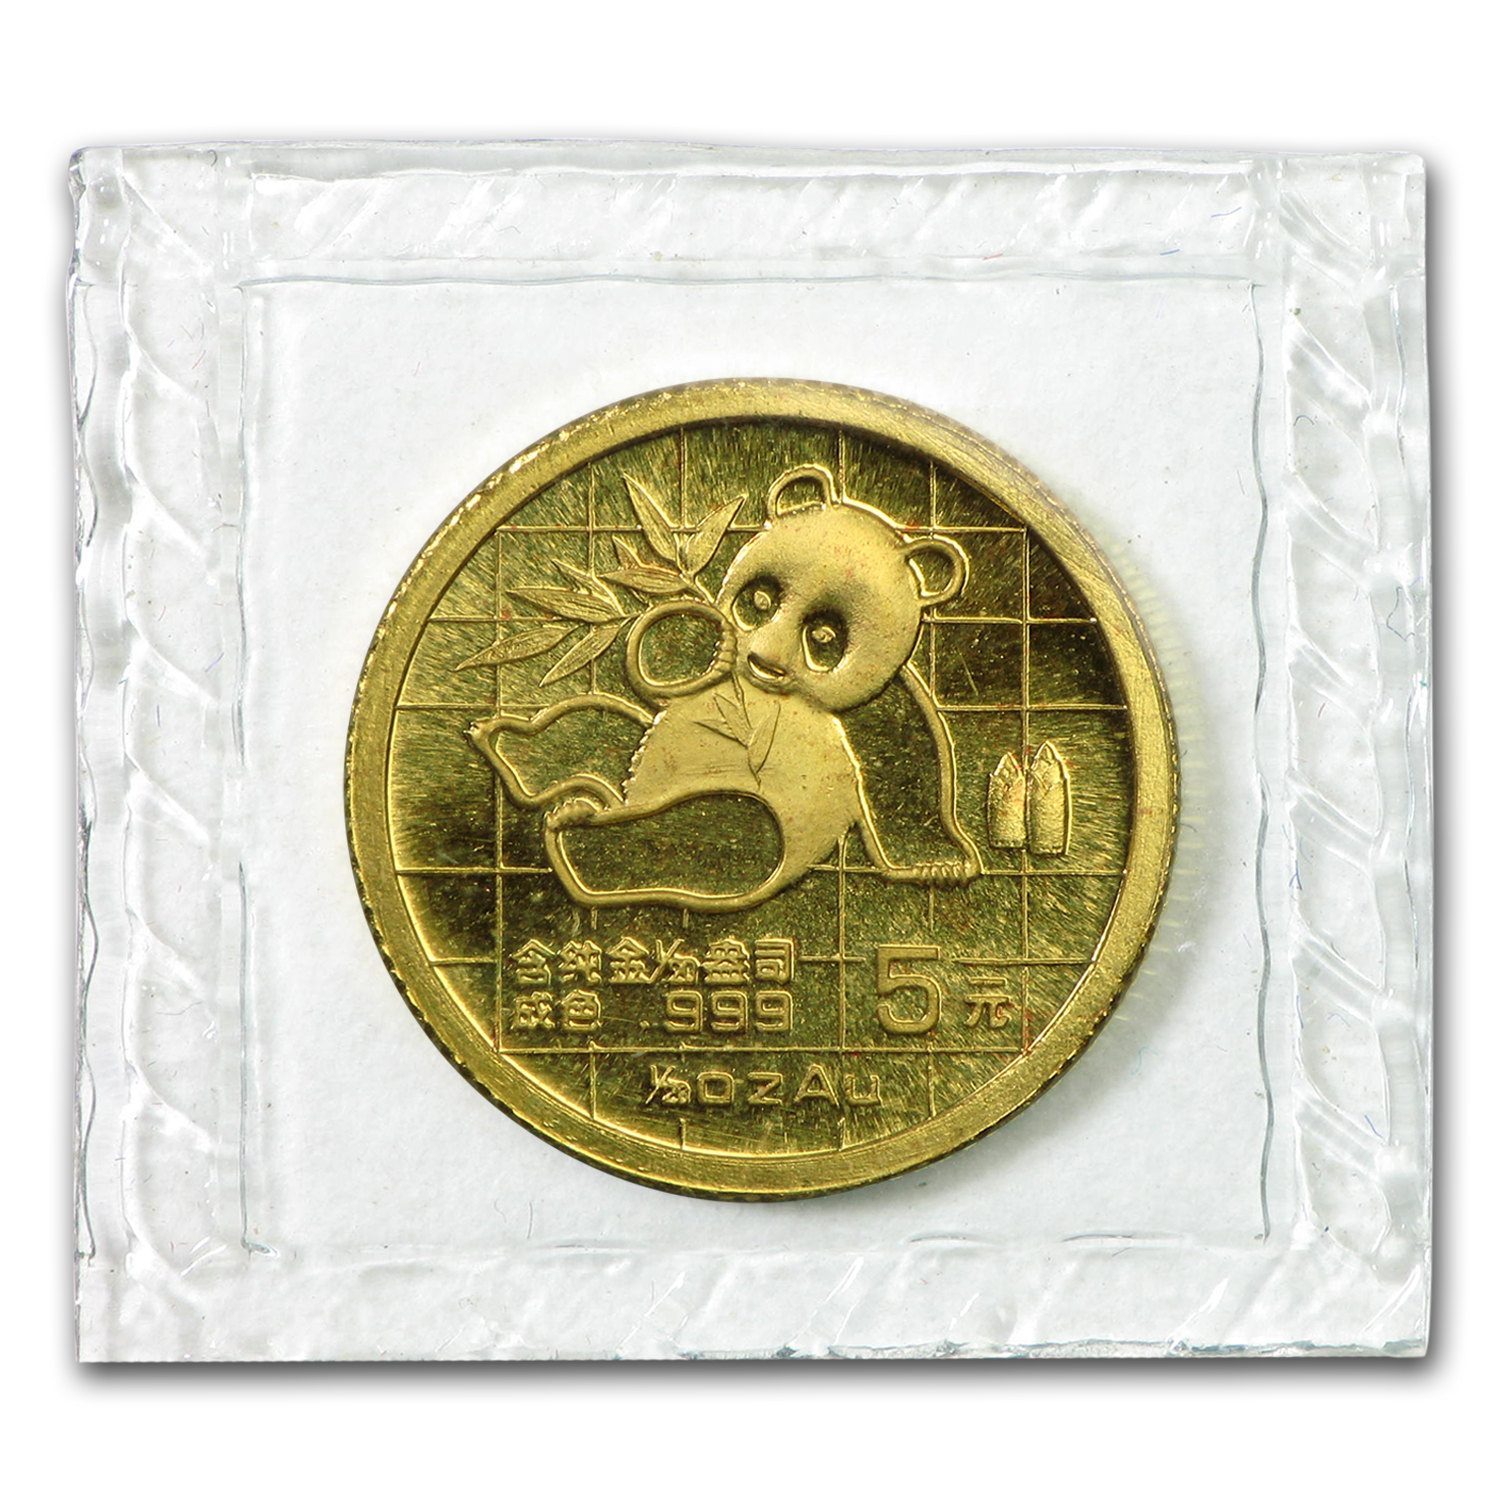 1989 China 1/20 oz Gold Panda Small Date BU (Sealed)